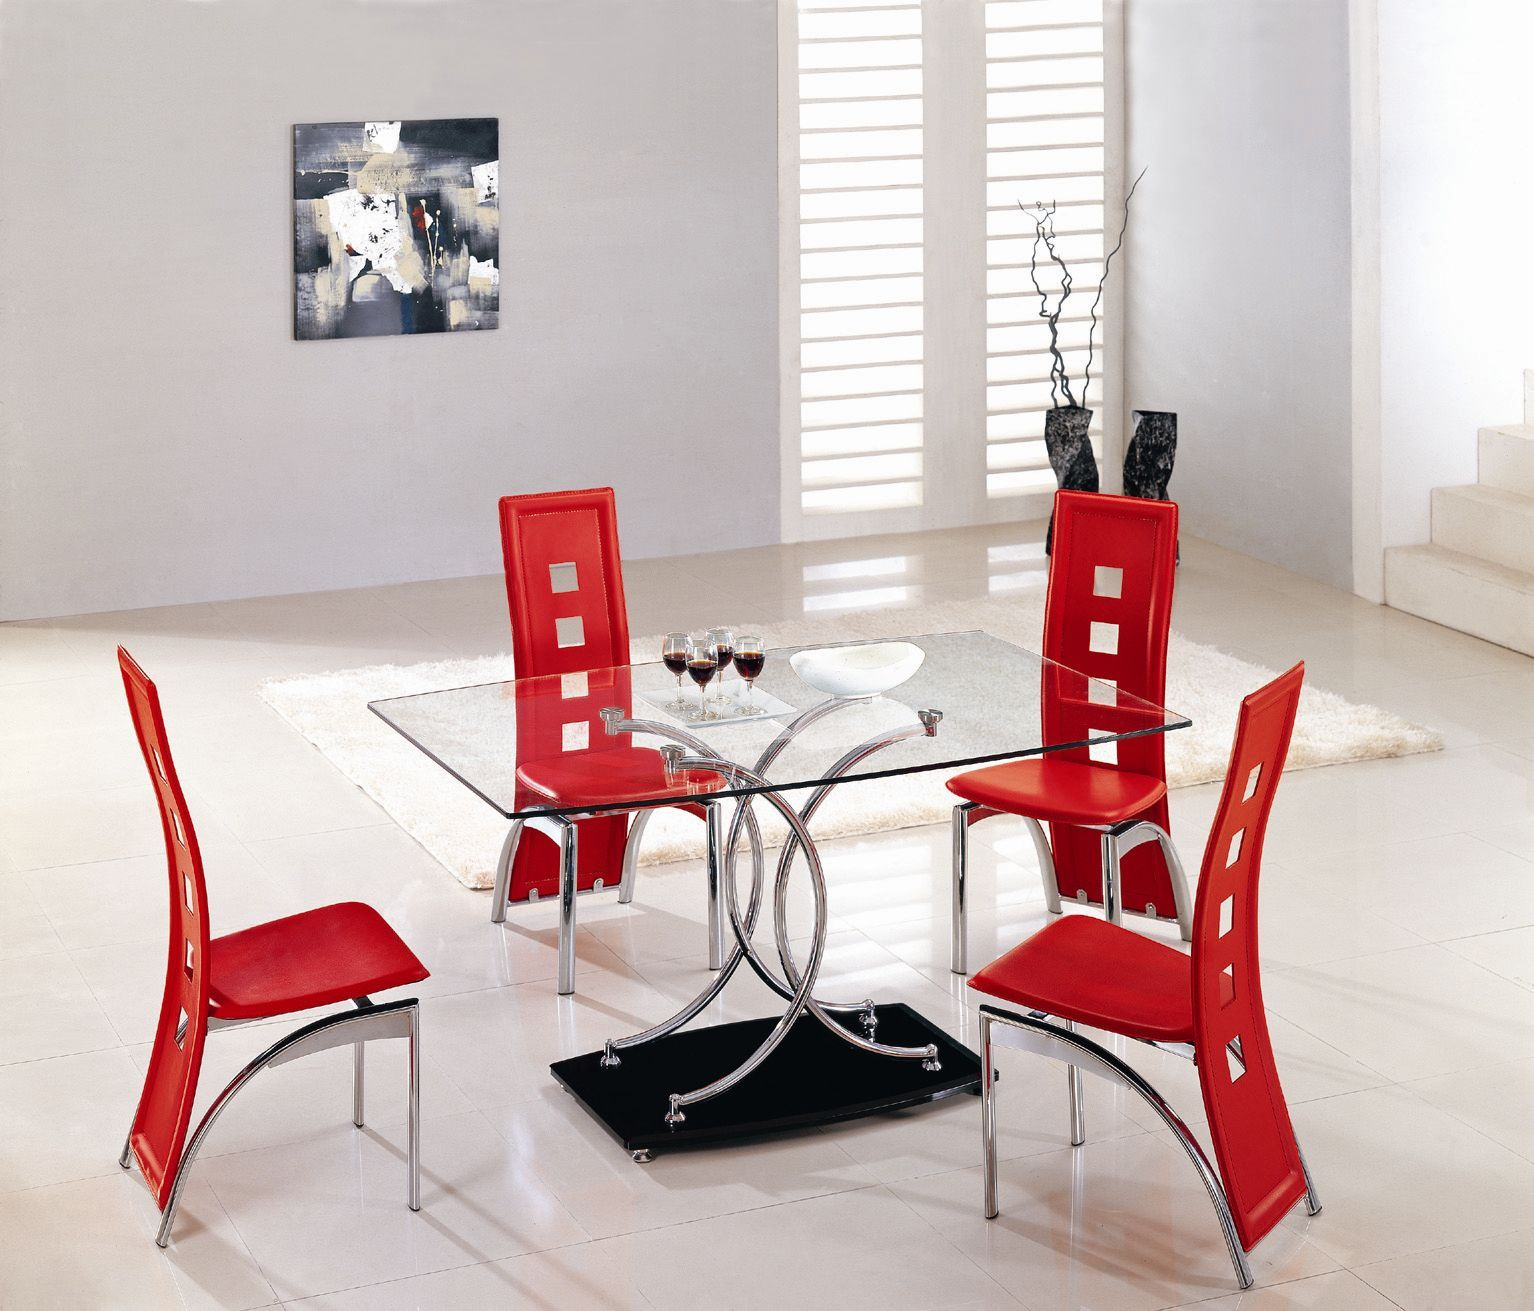 12 Modern And Unique Dining Table Designs  Furniture Ideas Unique Funky Dining Room Ideas Design Decoration